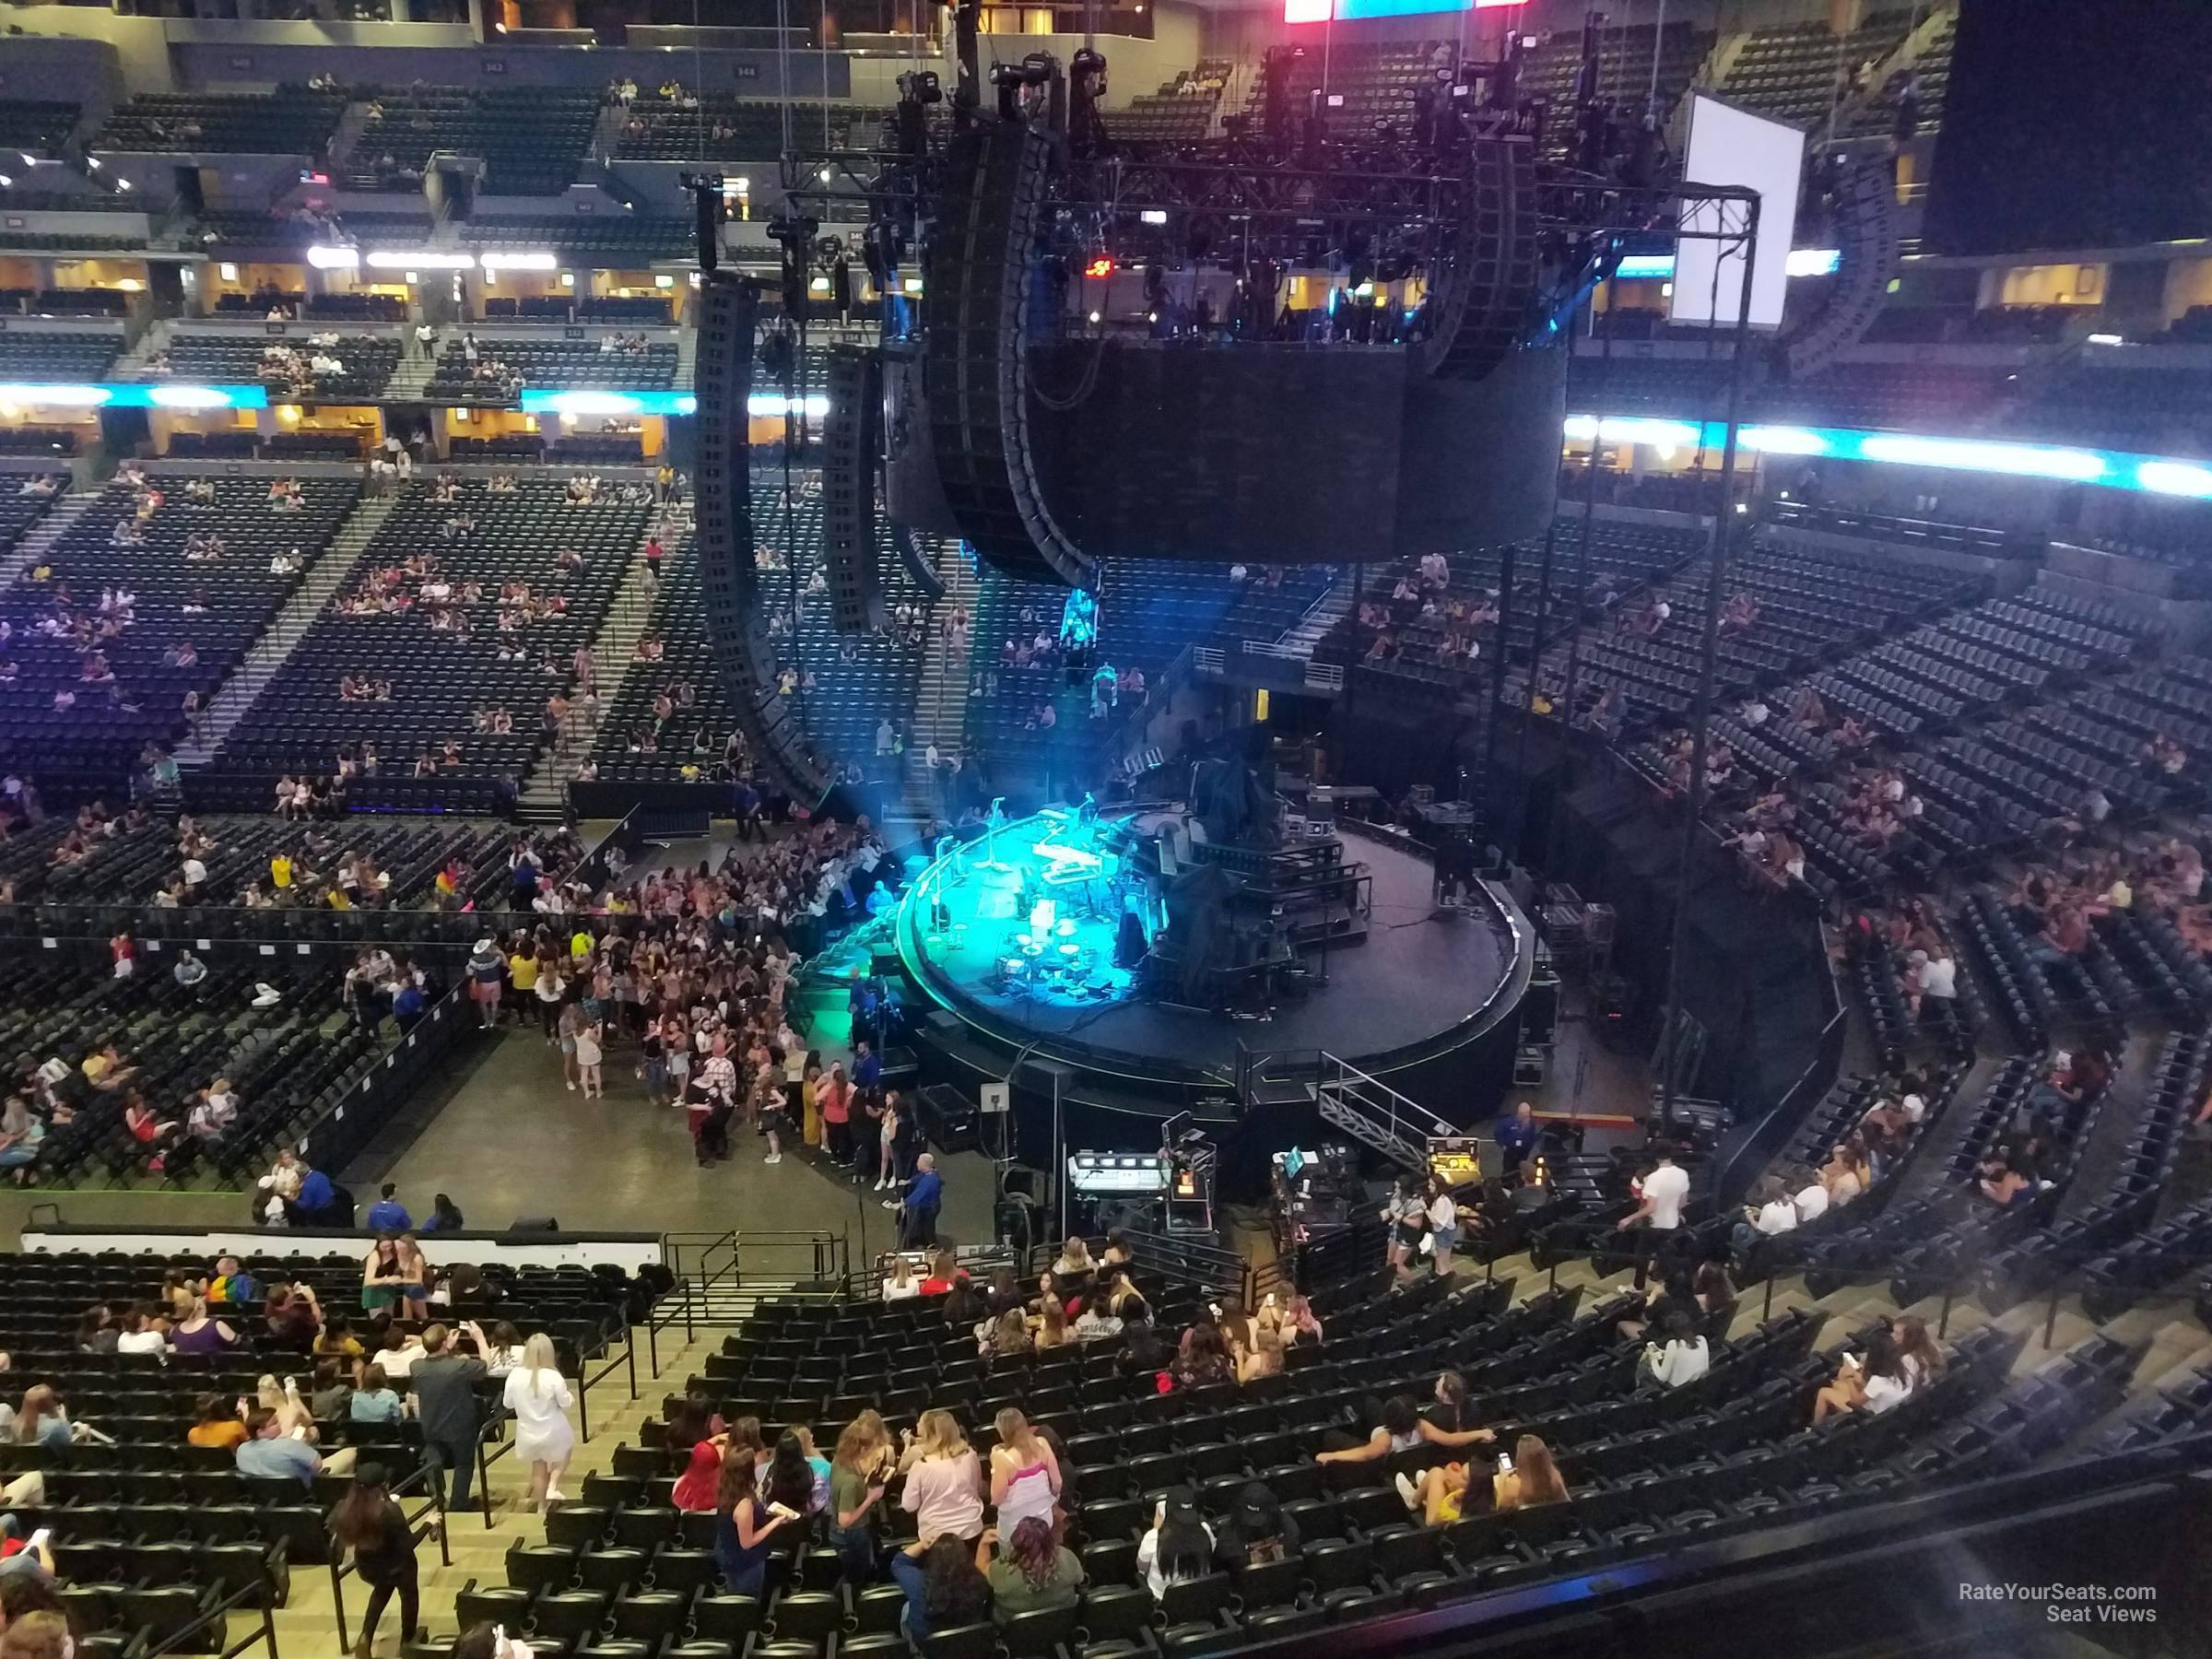 Pepsi Center: Pepsi Center Section 256 Concert Seating